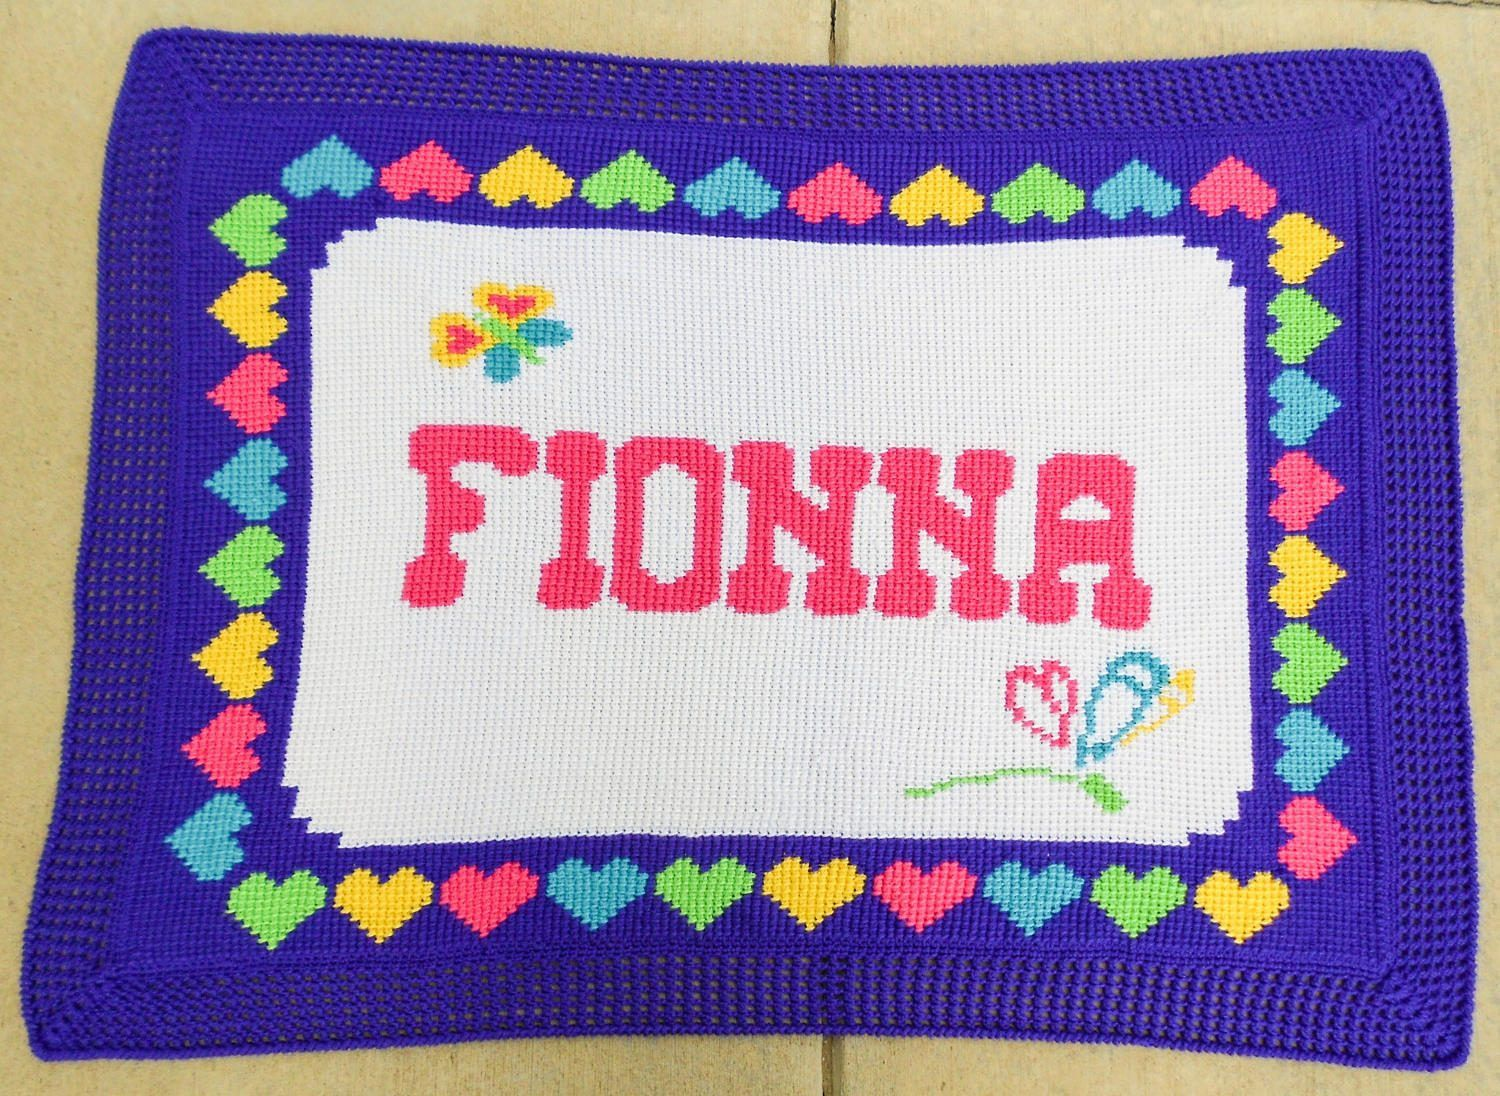 Personalized Child Blanket  Child Name Blanket  Crochet Child Name Blanket   Custom Afghan  Baby Keepsake  One Of A Kind Gift Baby Gift